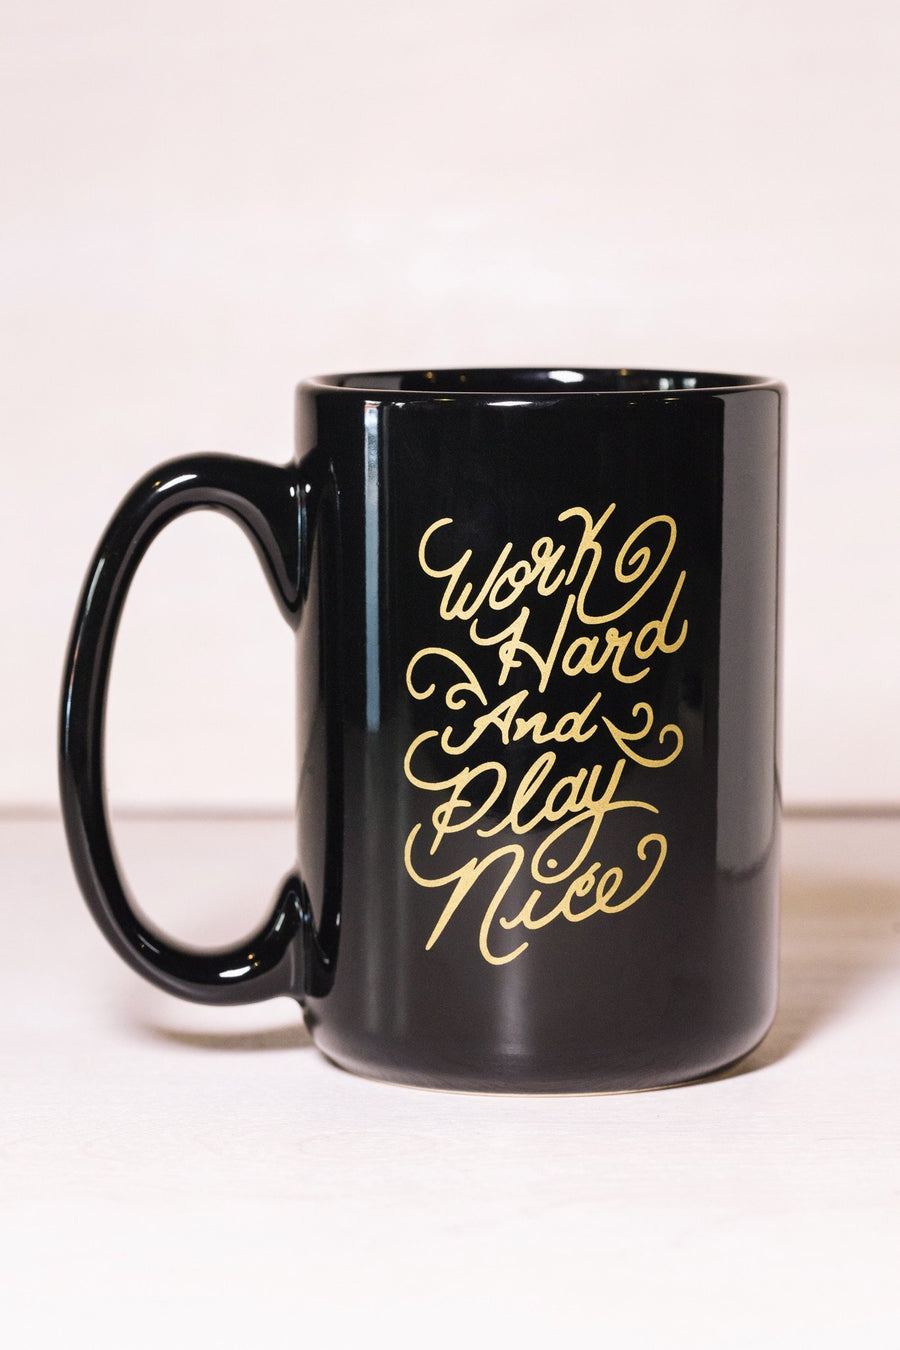 Work Hard and Play Nice mug